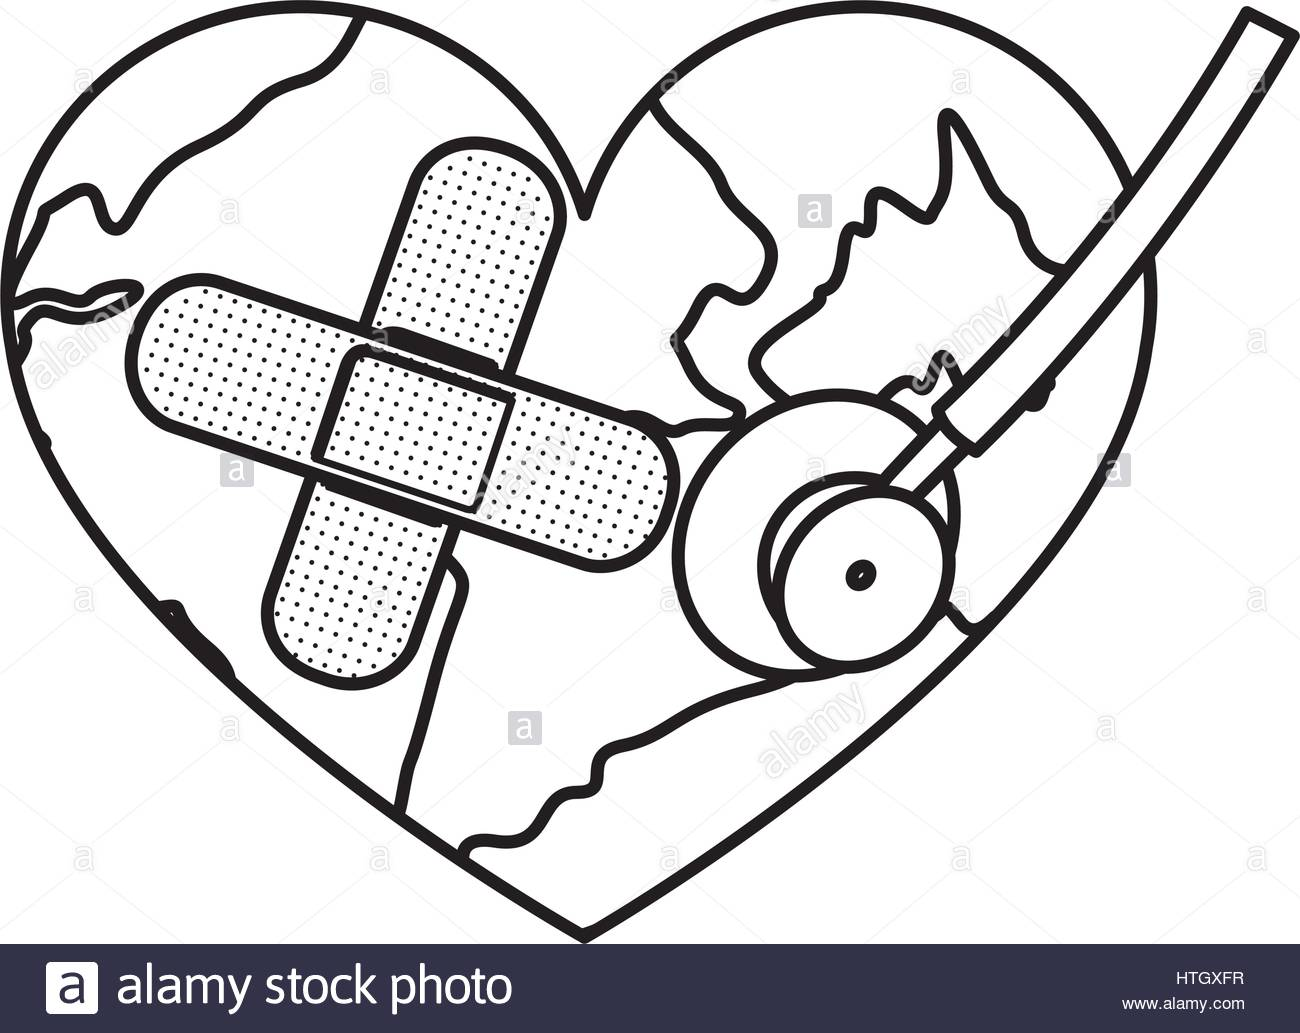 1300x1033 Figure Earth Planet Heart With Stethoscope And Band Aid Icon Stock